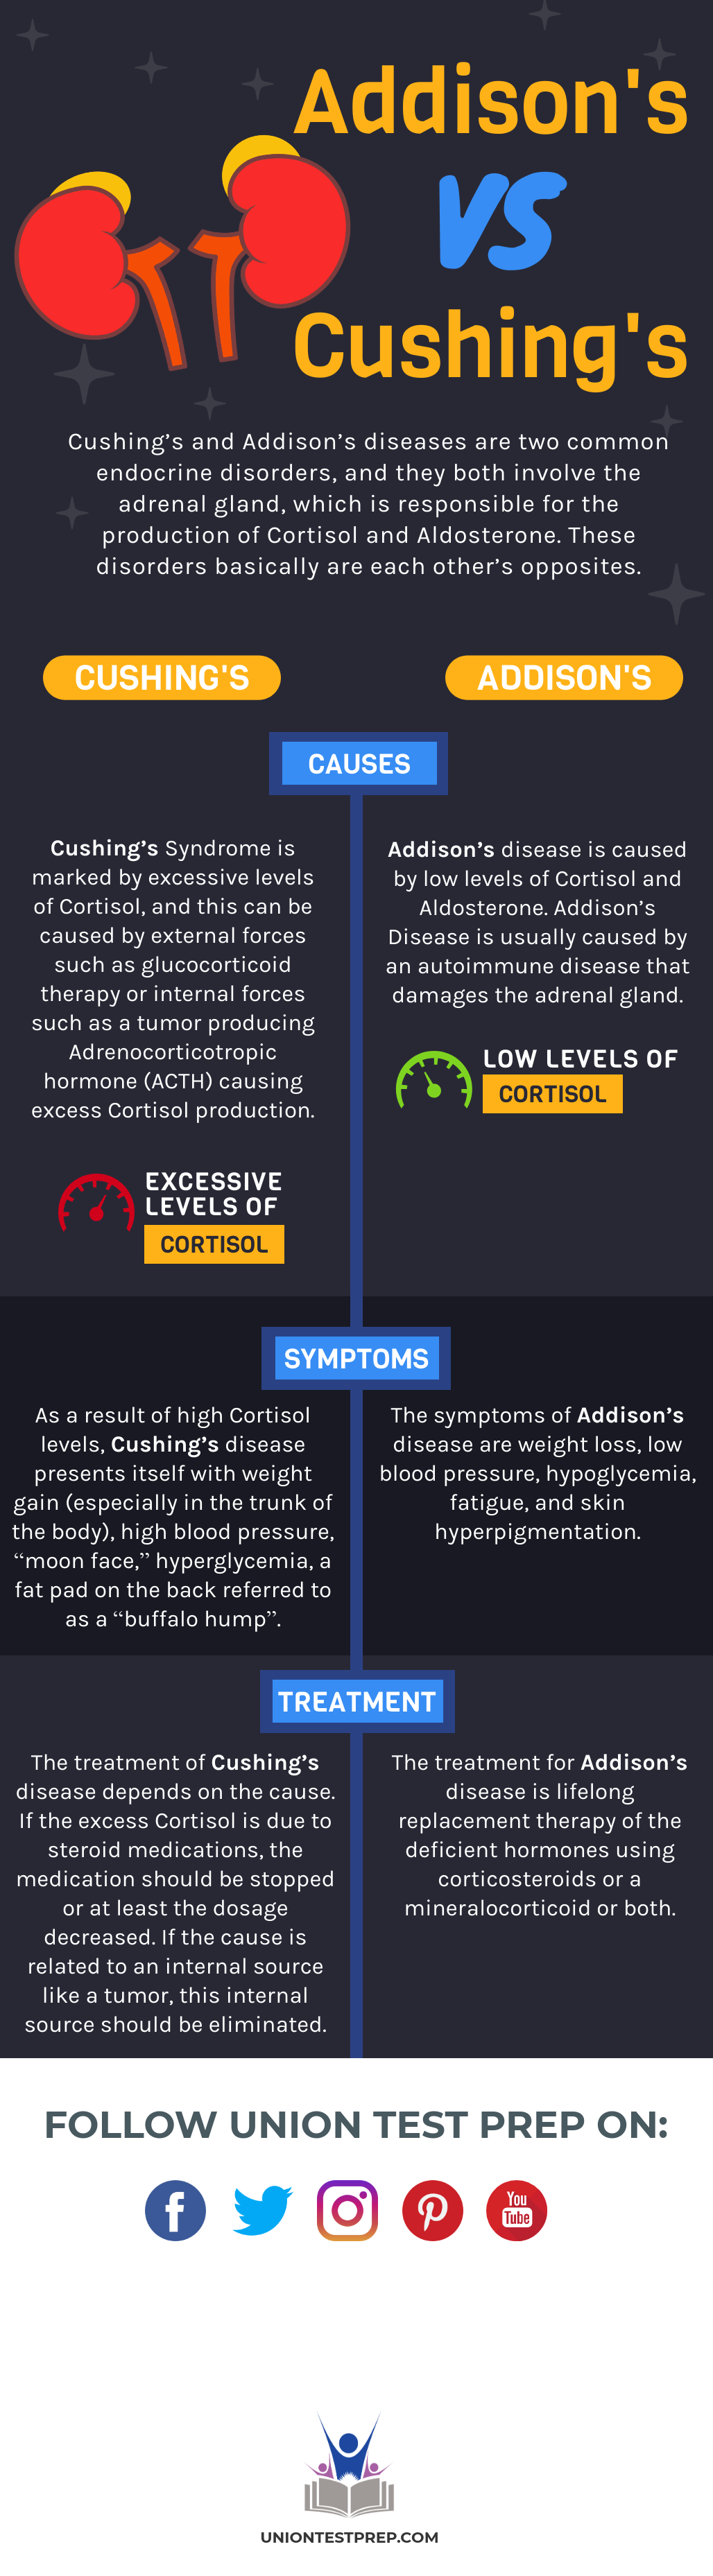 The Differences Between Cushing's and Addison's Diseases